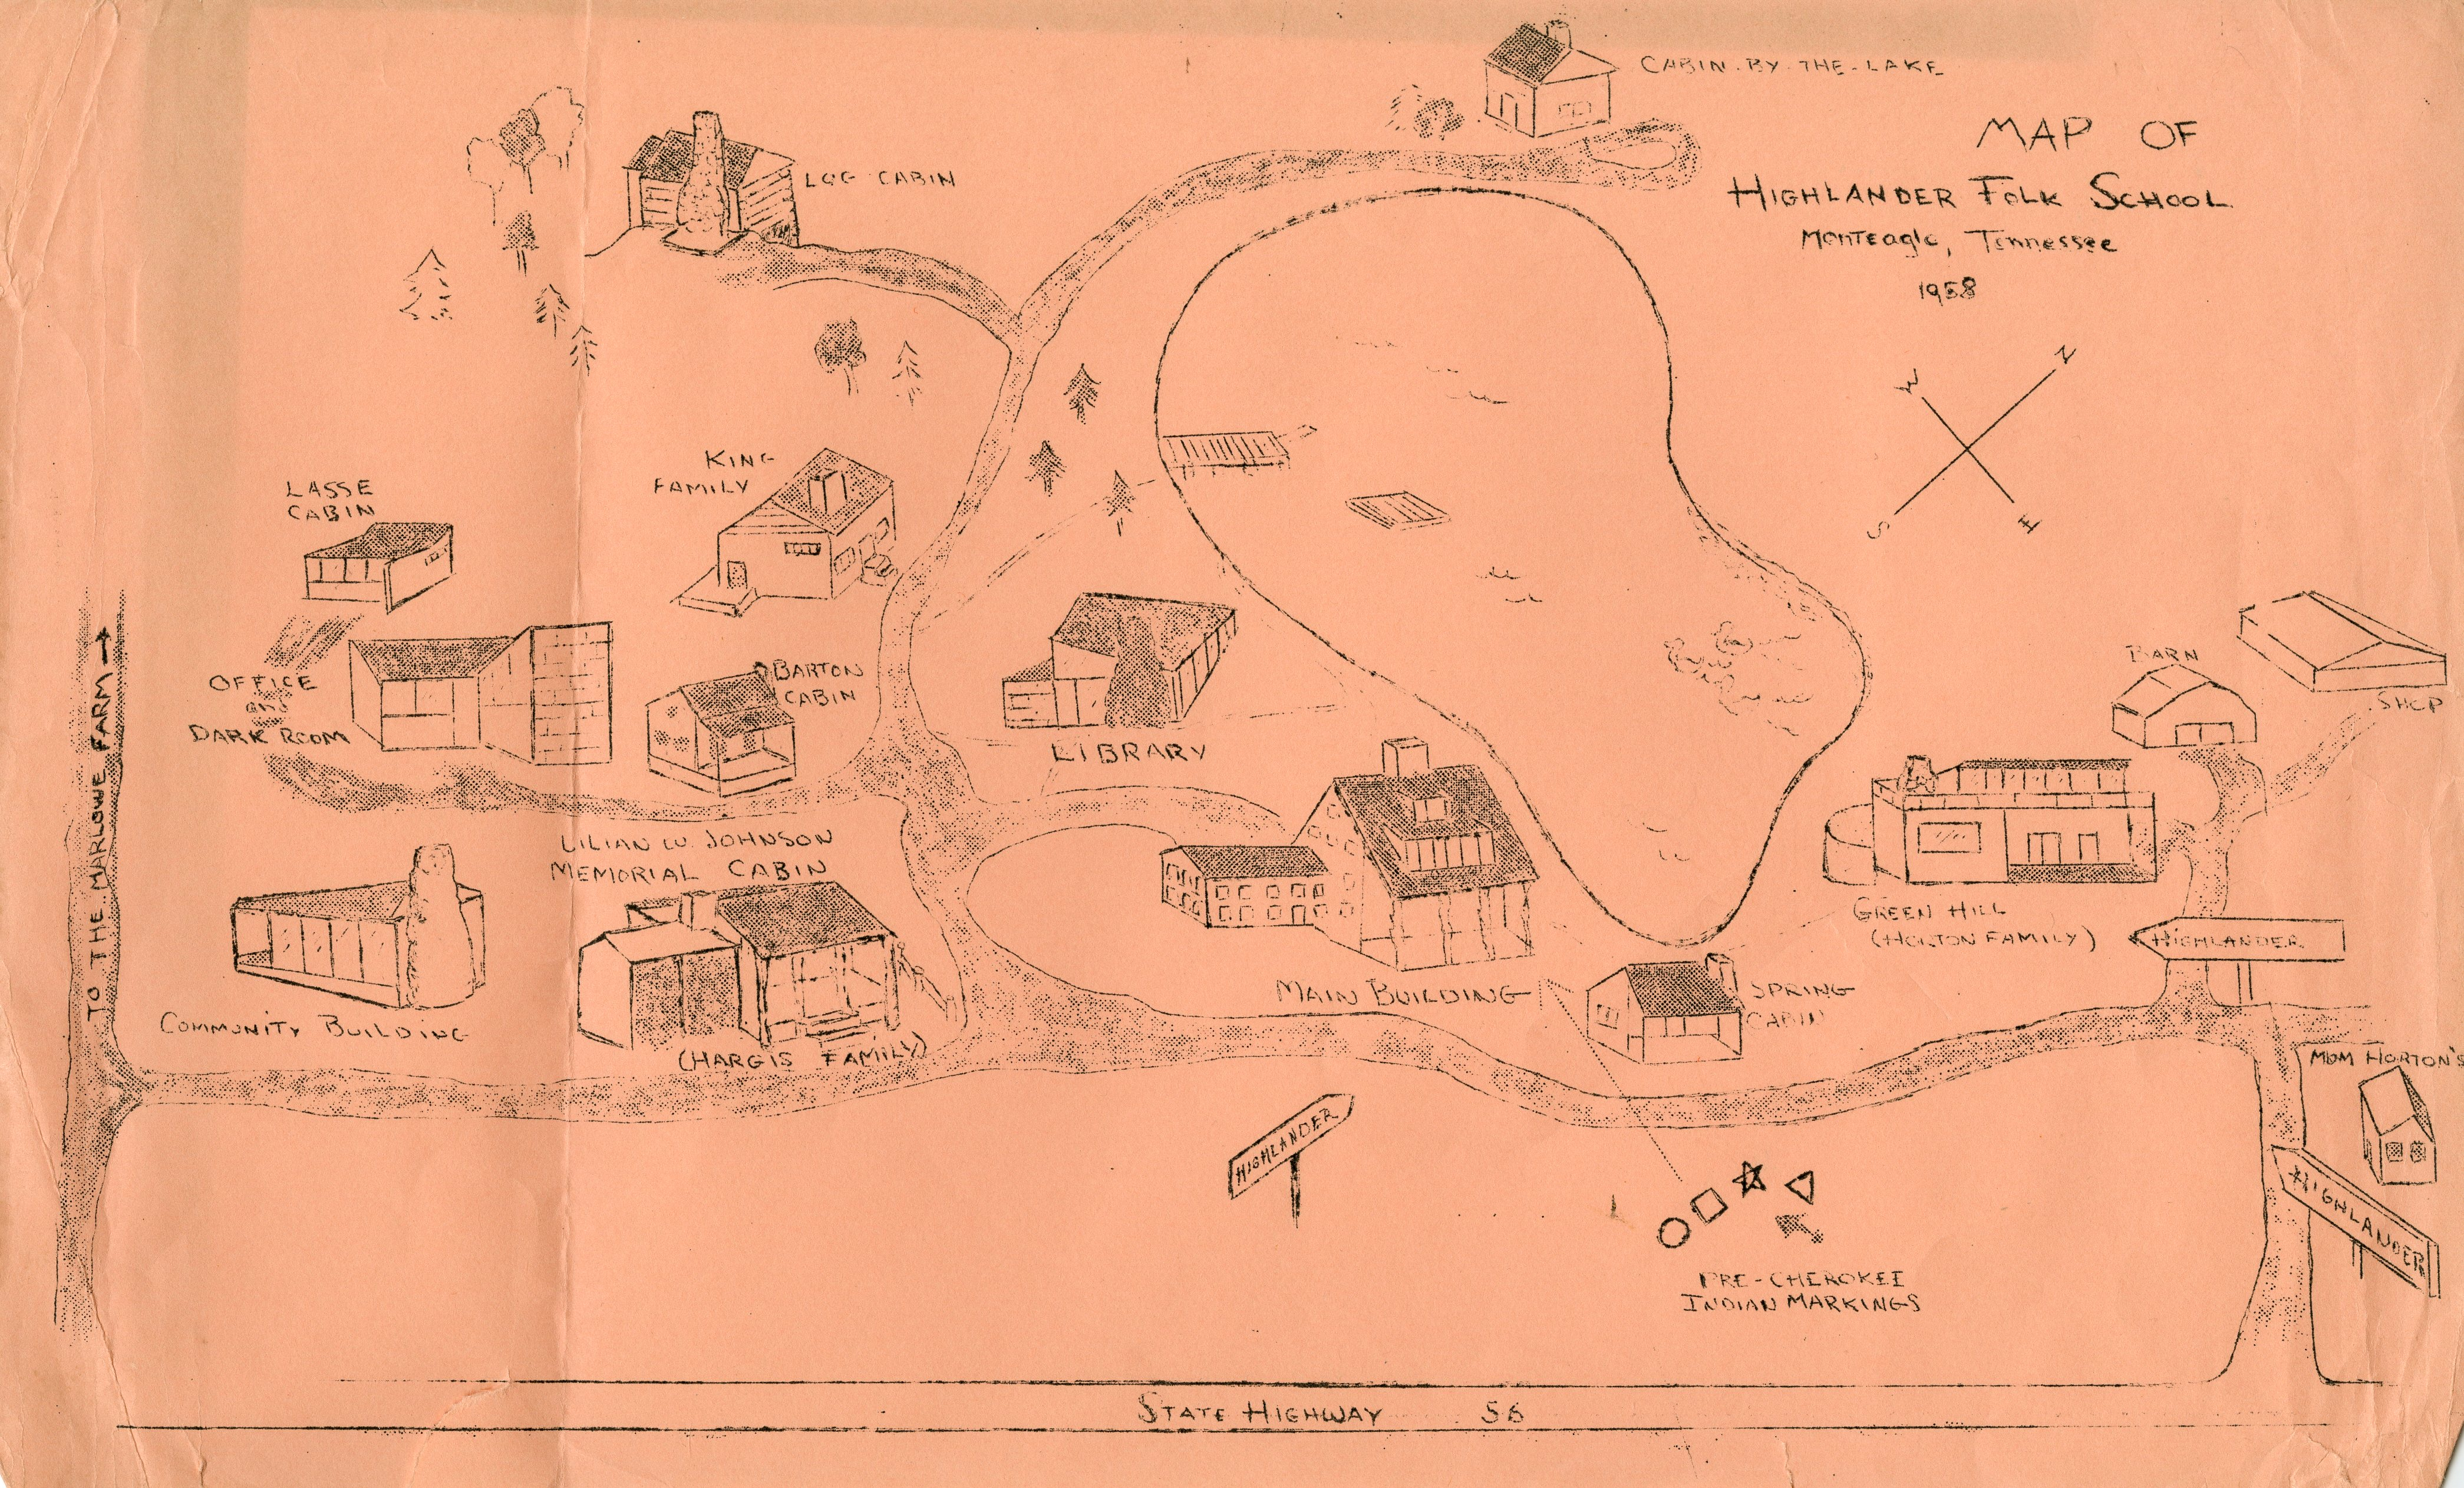 20008_Folder11_HighlanderFolkSchool_Map_009